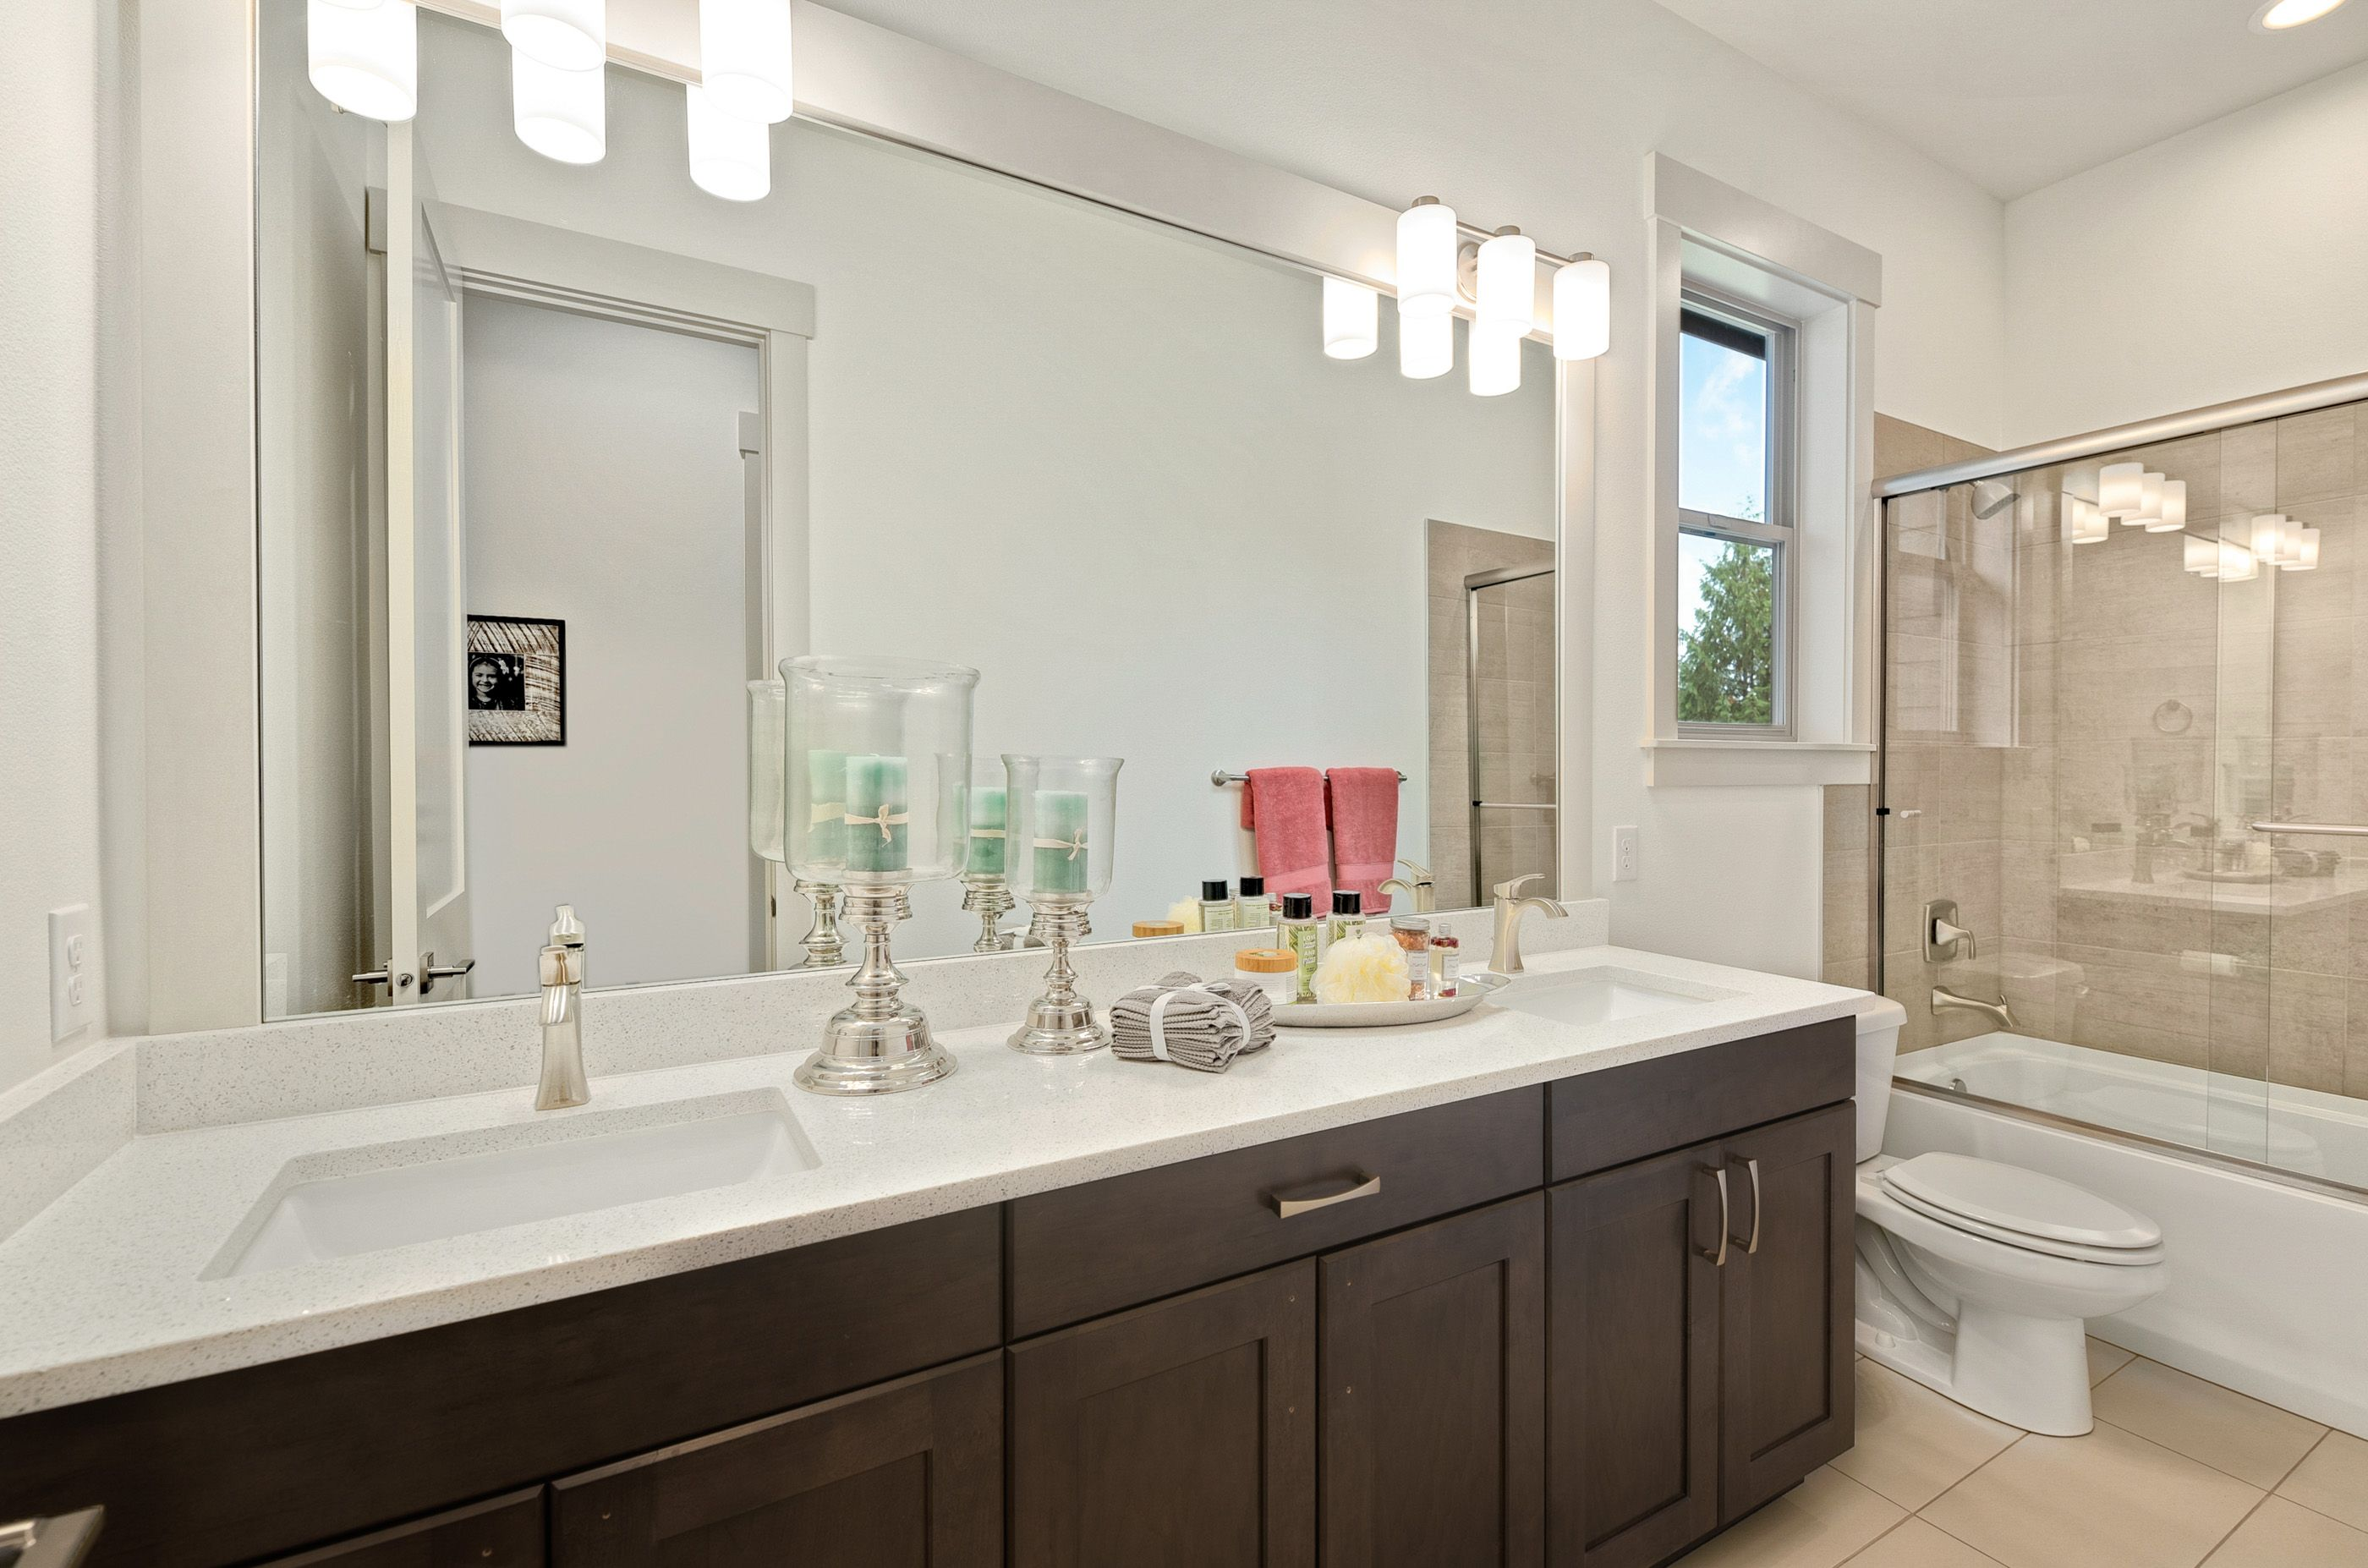 Bathroom featured in the Plan 164 By Schneider Family Homes in Seattle-Bellevue, WA